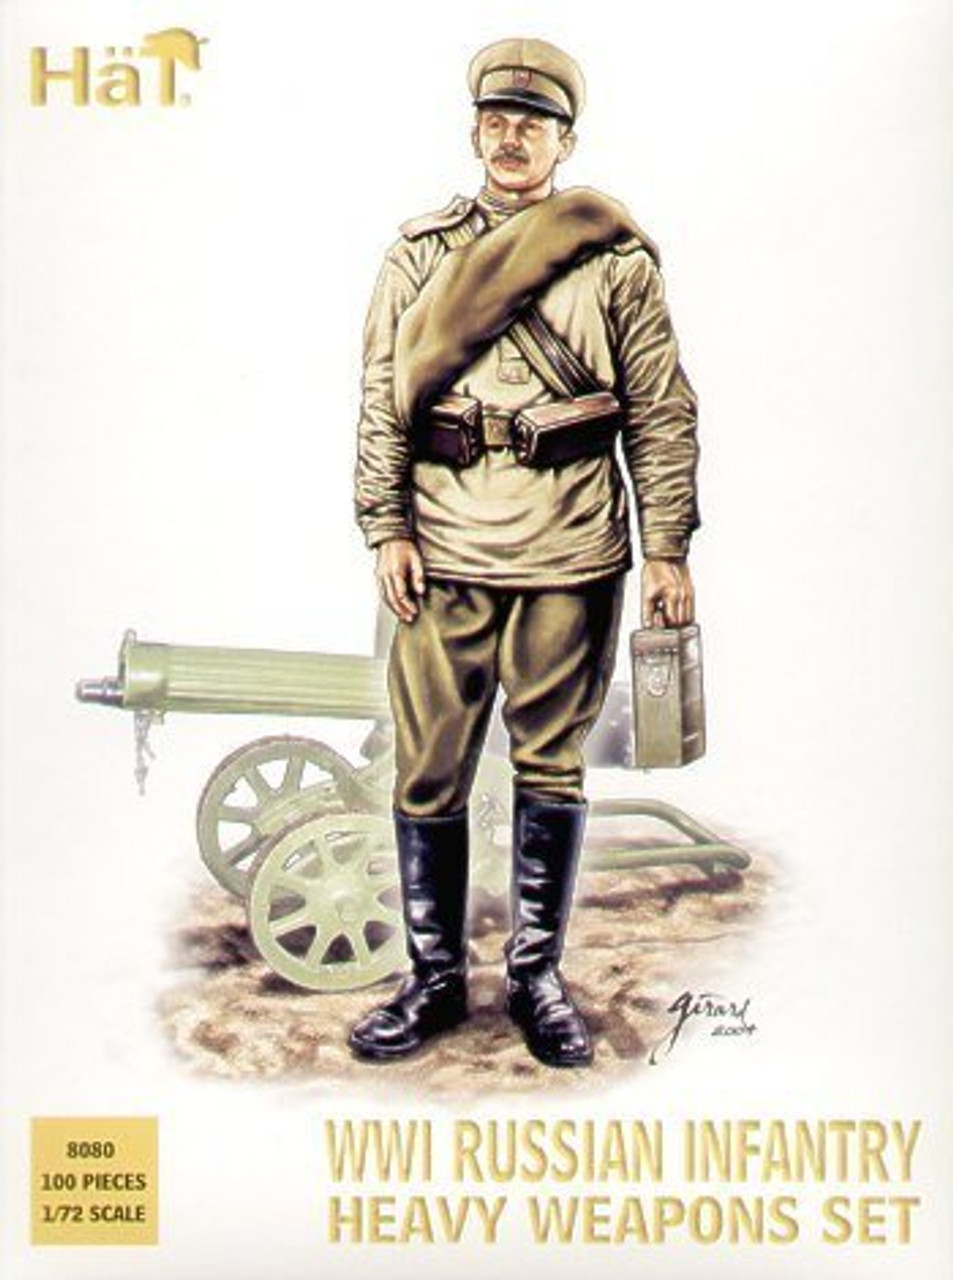 HaT 8080 WWI Russian Heavy Weapons Figures 1:72 Scale